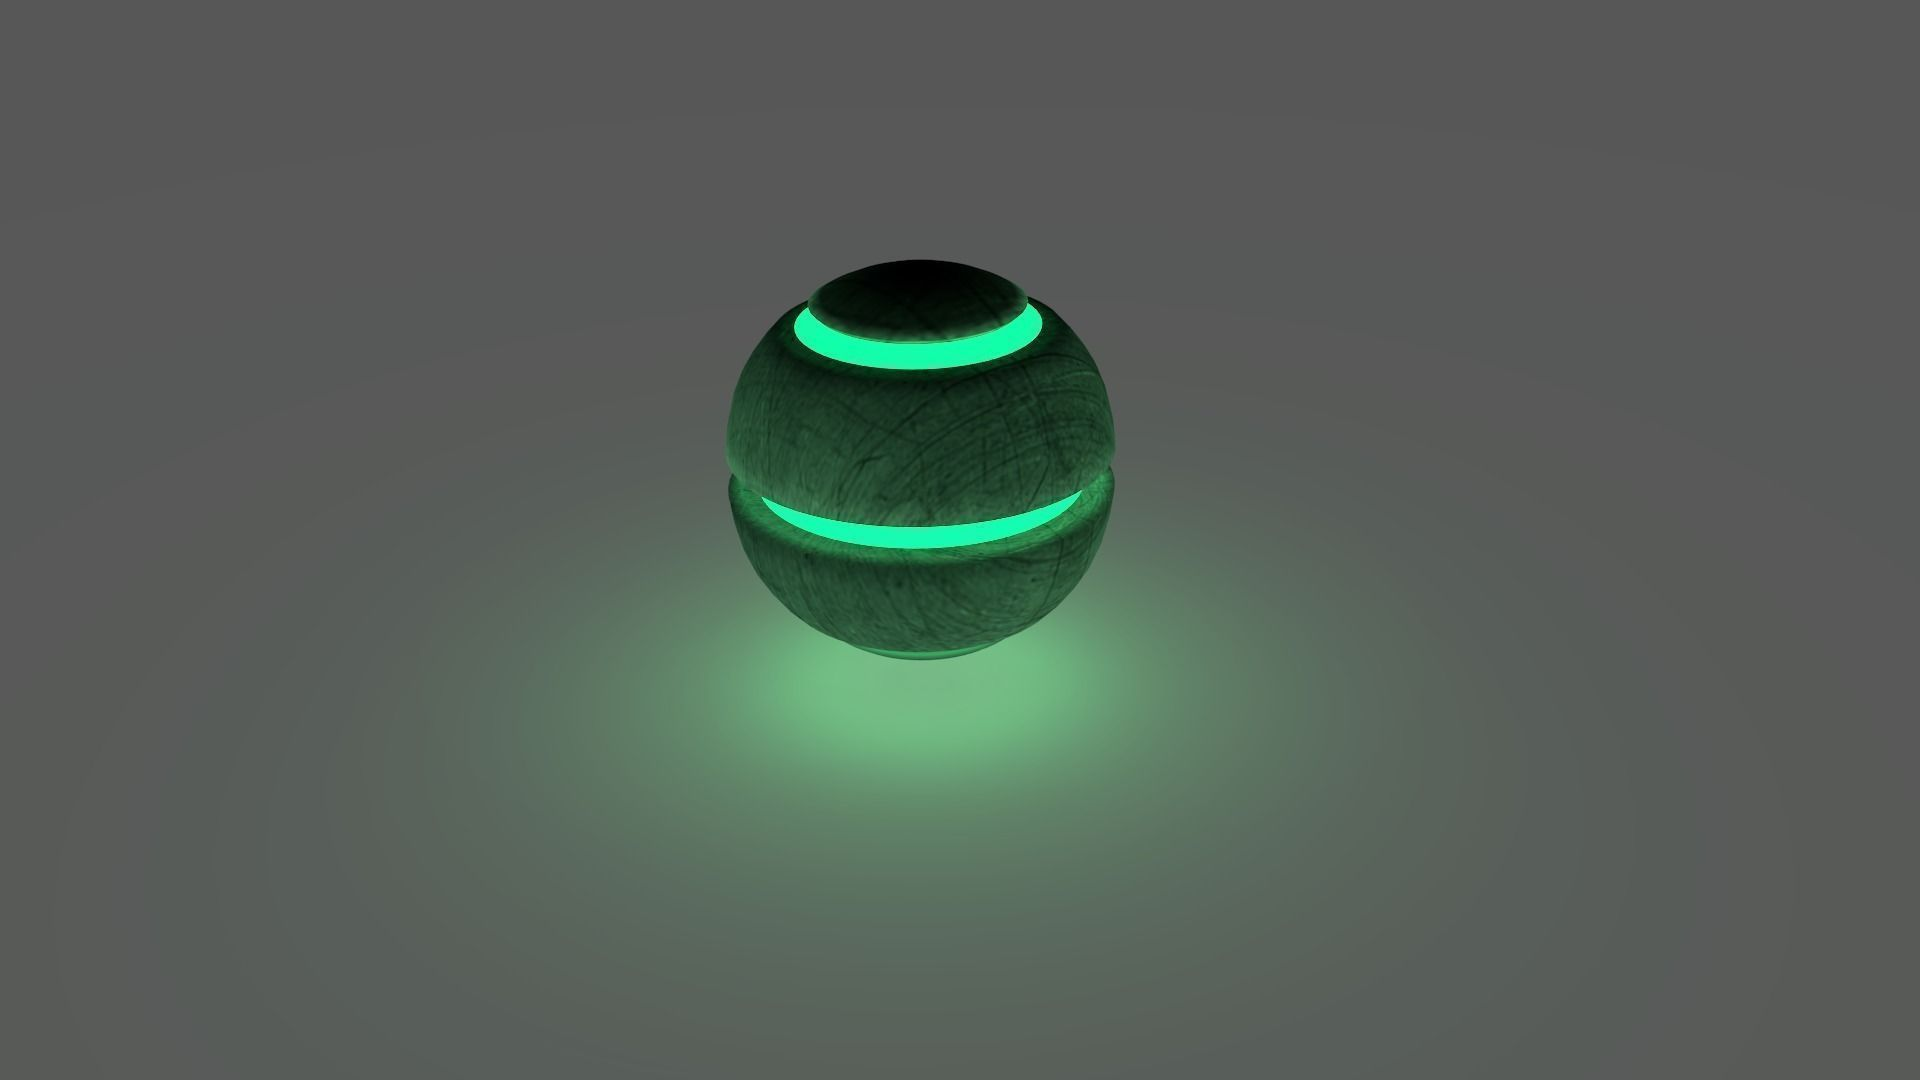 Simple sci fi grenade 3d model blend Simple 3d modeling online